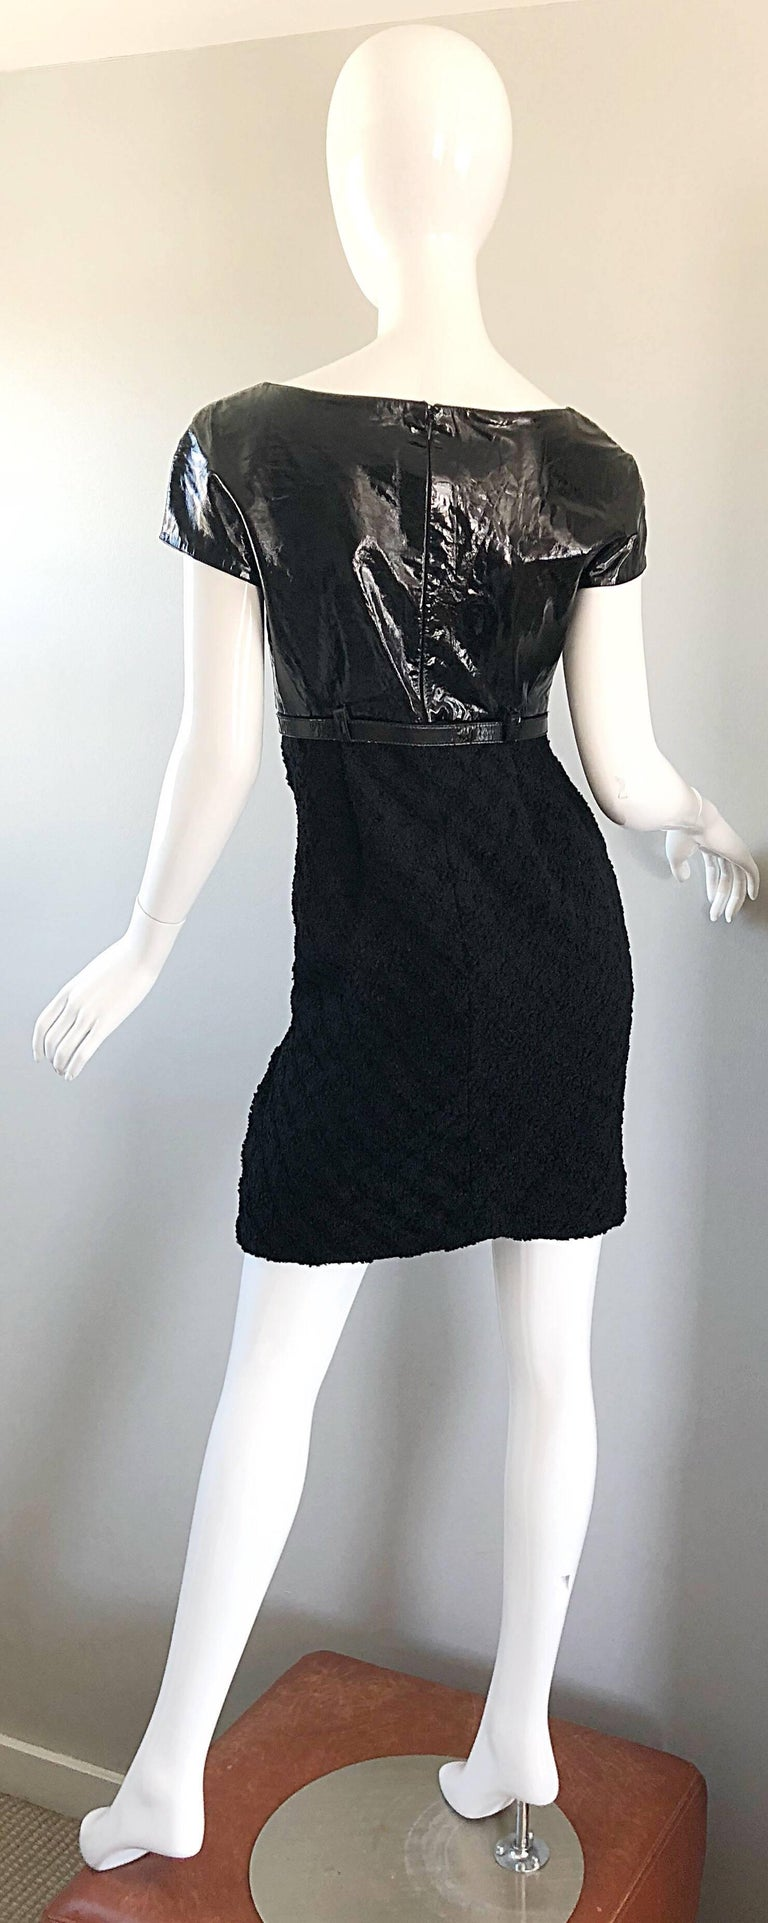 Documented Gianni Versace Couture Vintage F/W 1994 Black PVC Wool 90s Dress For Sale 3